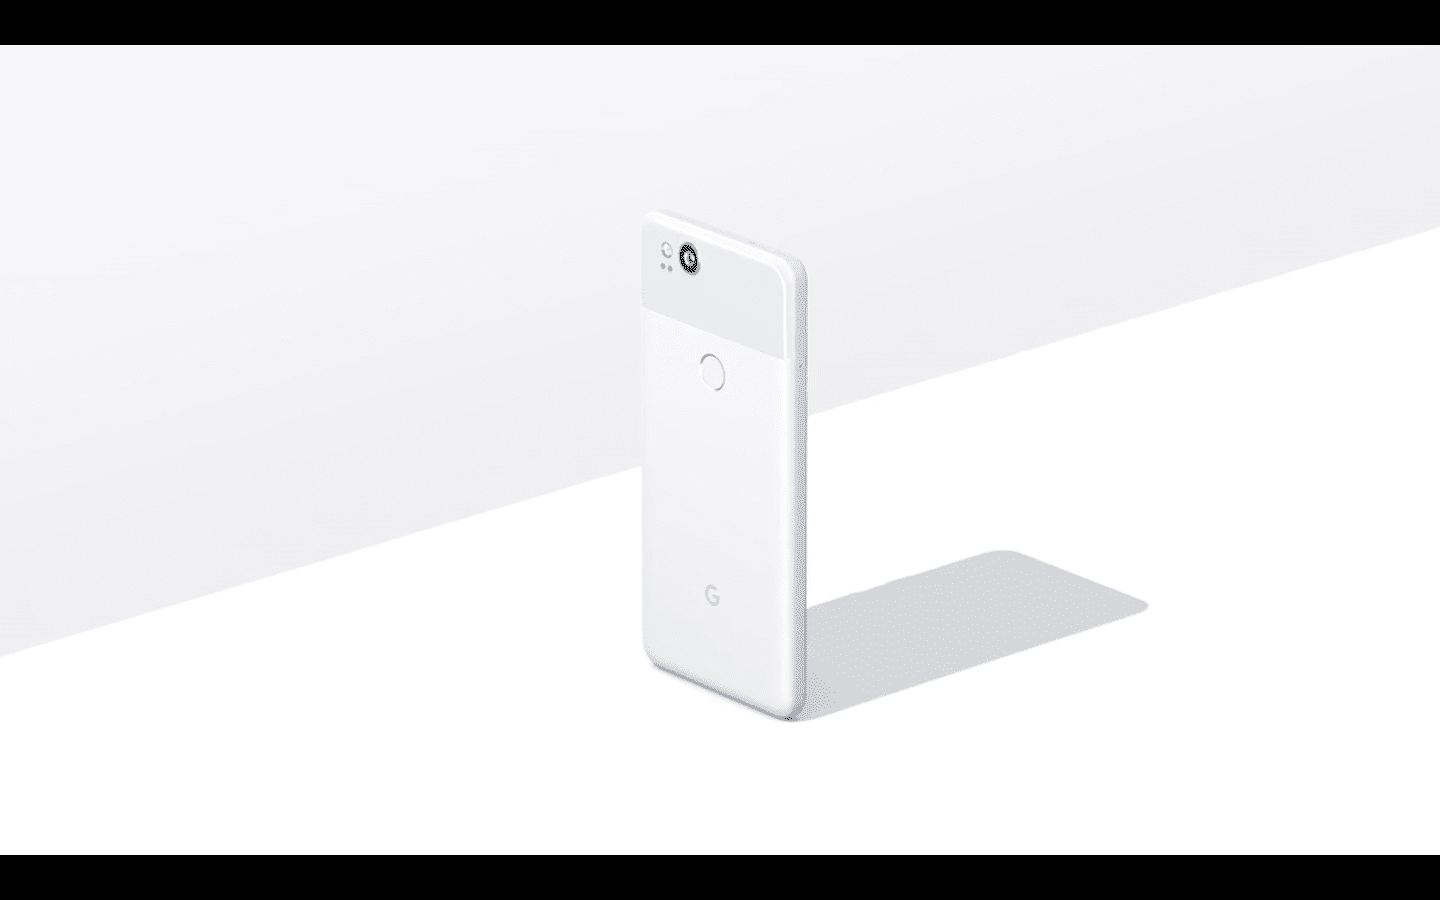 Google Products: Pixel 2 Launch